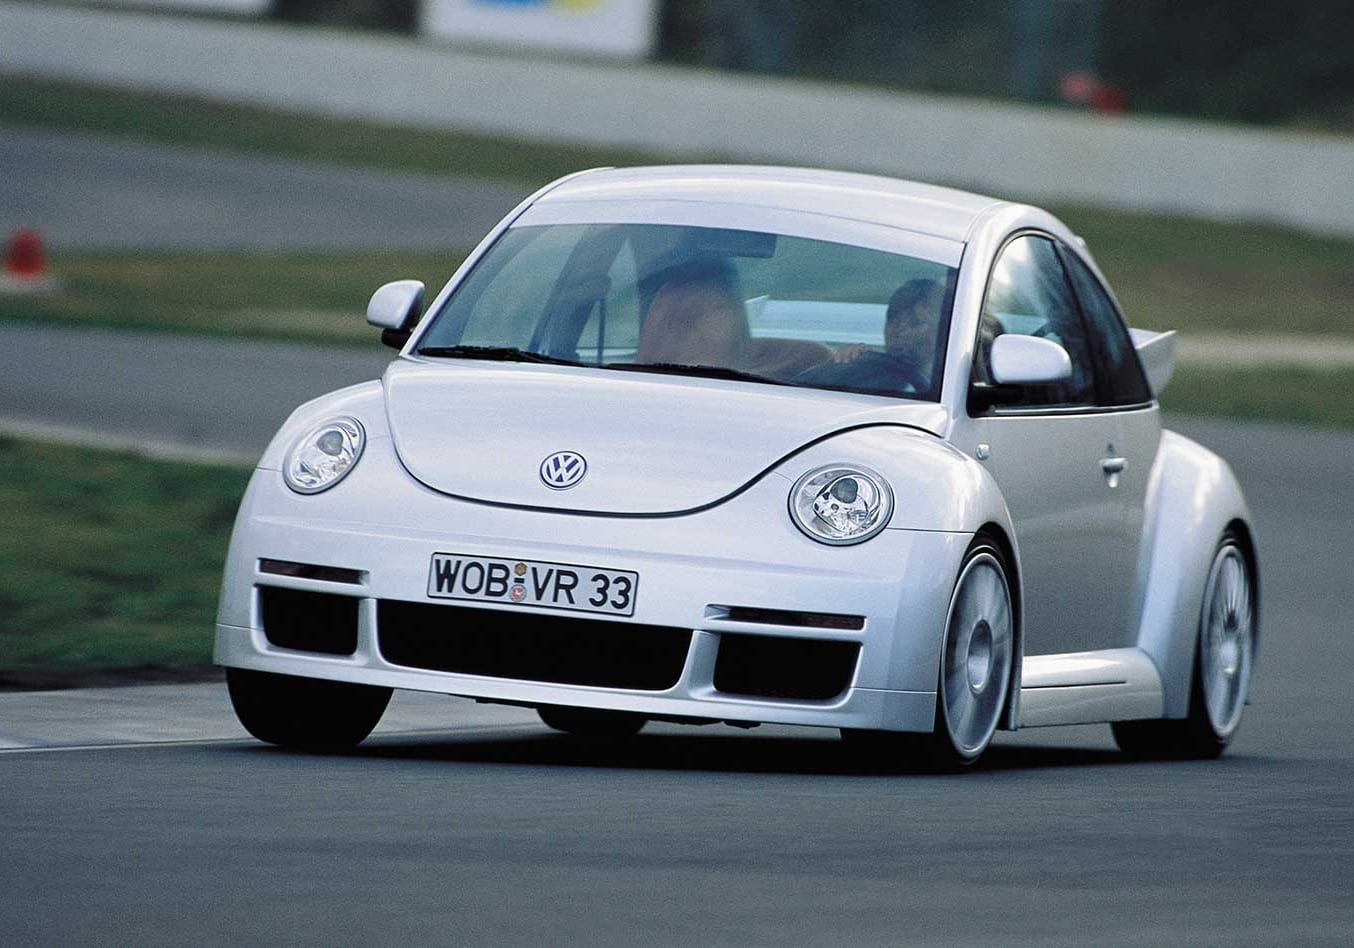 2000 Volkswagen Beetle RSI Fast Car History Lesson